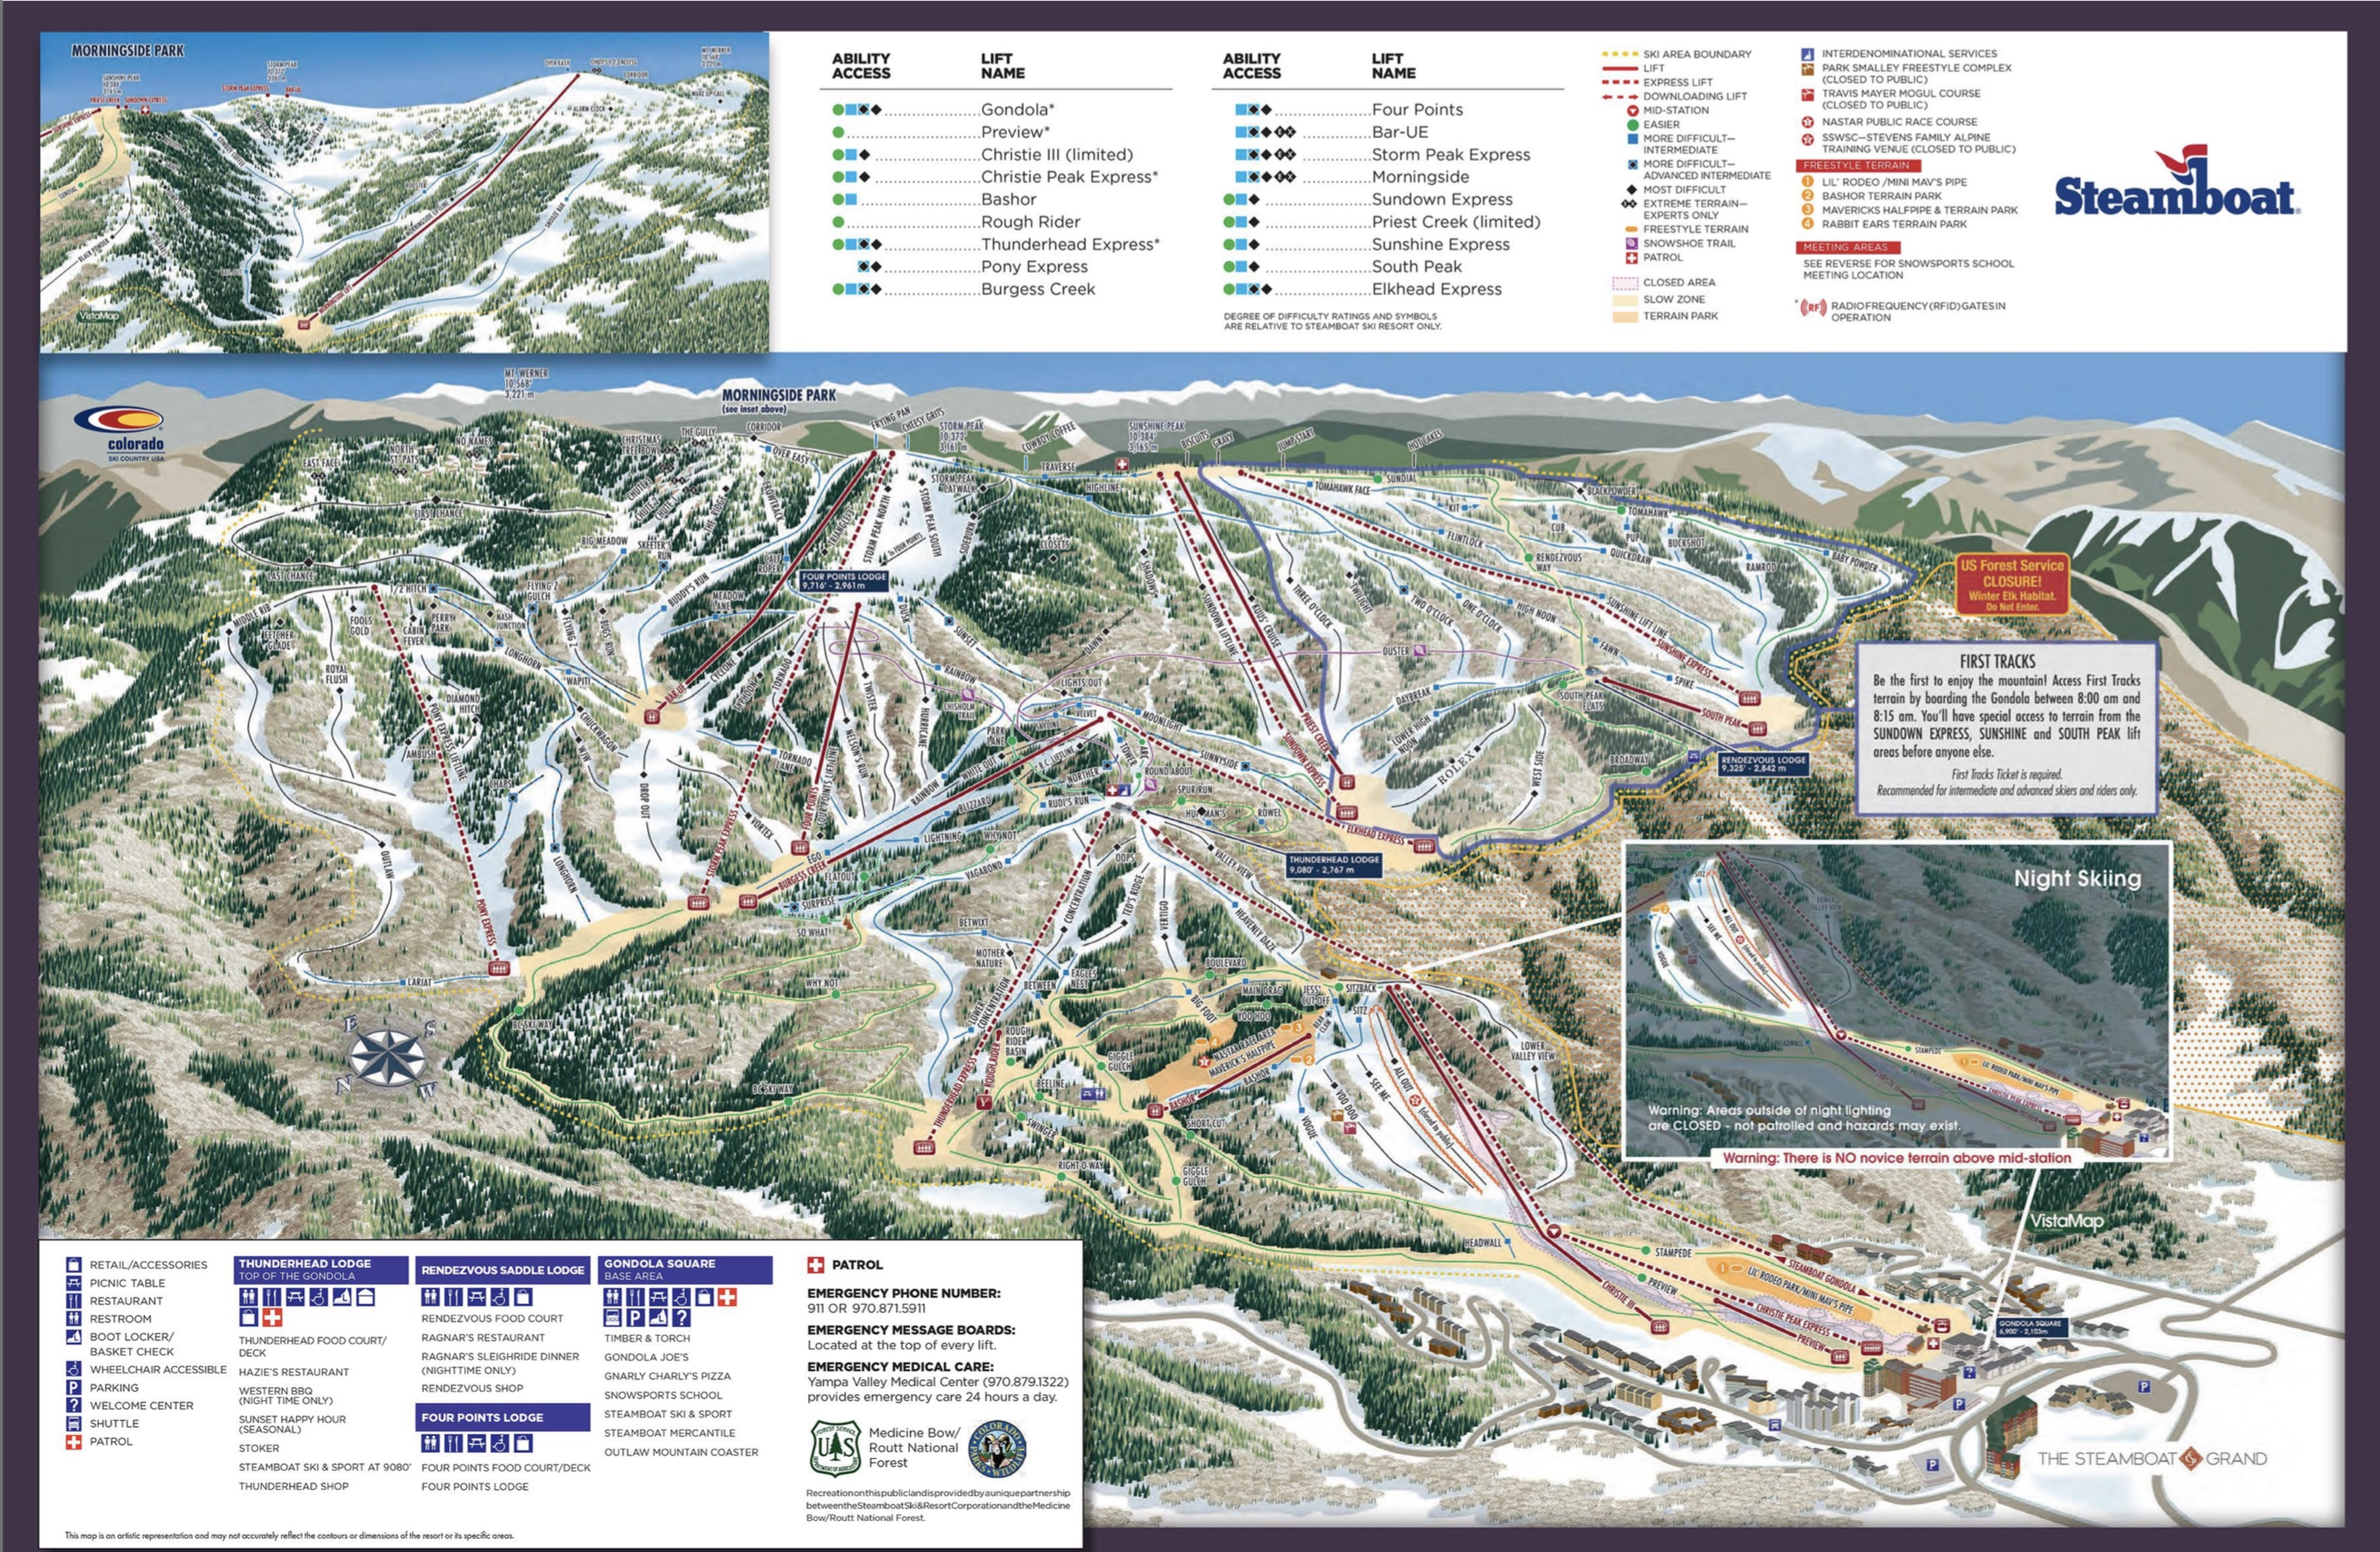 Steamboat Ski Resort - SkiMap.org on broomfield trail map, westminster trail map, henderson trail map, colorado springs pikes peak trail map, loveland trail map, durham trail map, durango trail map, steamboat ski resort trail map, thornton trail map, rio grande national forest trail map, crested butte trail map, windsor trail map, winter park trail map, telluride trail map, arapahoe basin trail map, wolf creek trail map, breckenridge trail map, snowmass trail map, copper mountain trail map, vail trail map,